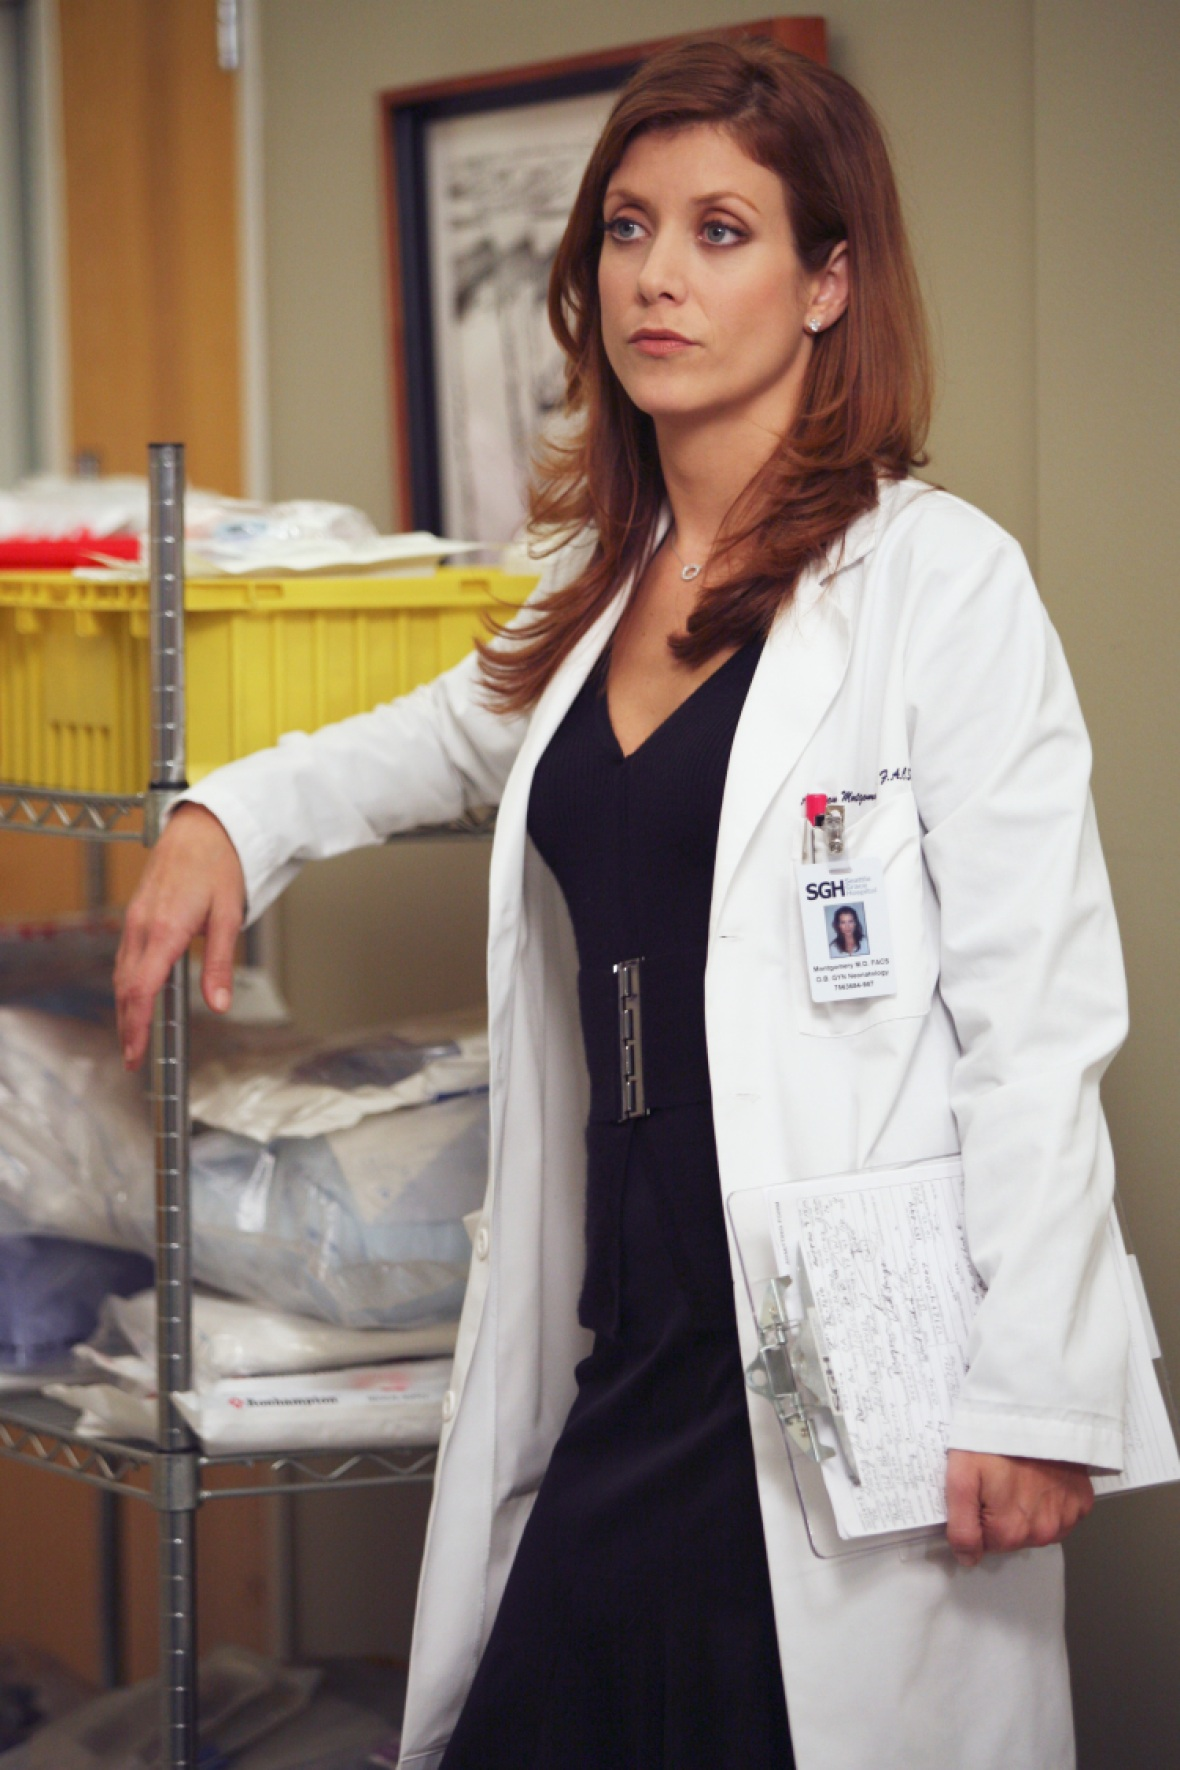 kate walsh 'grey's anatomy' getty images